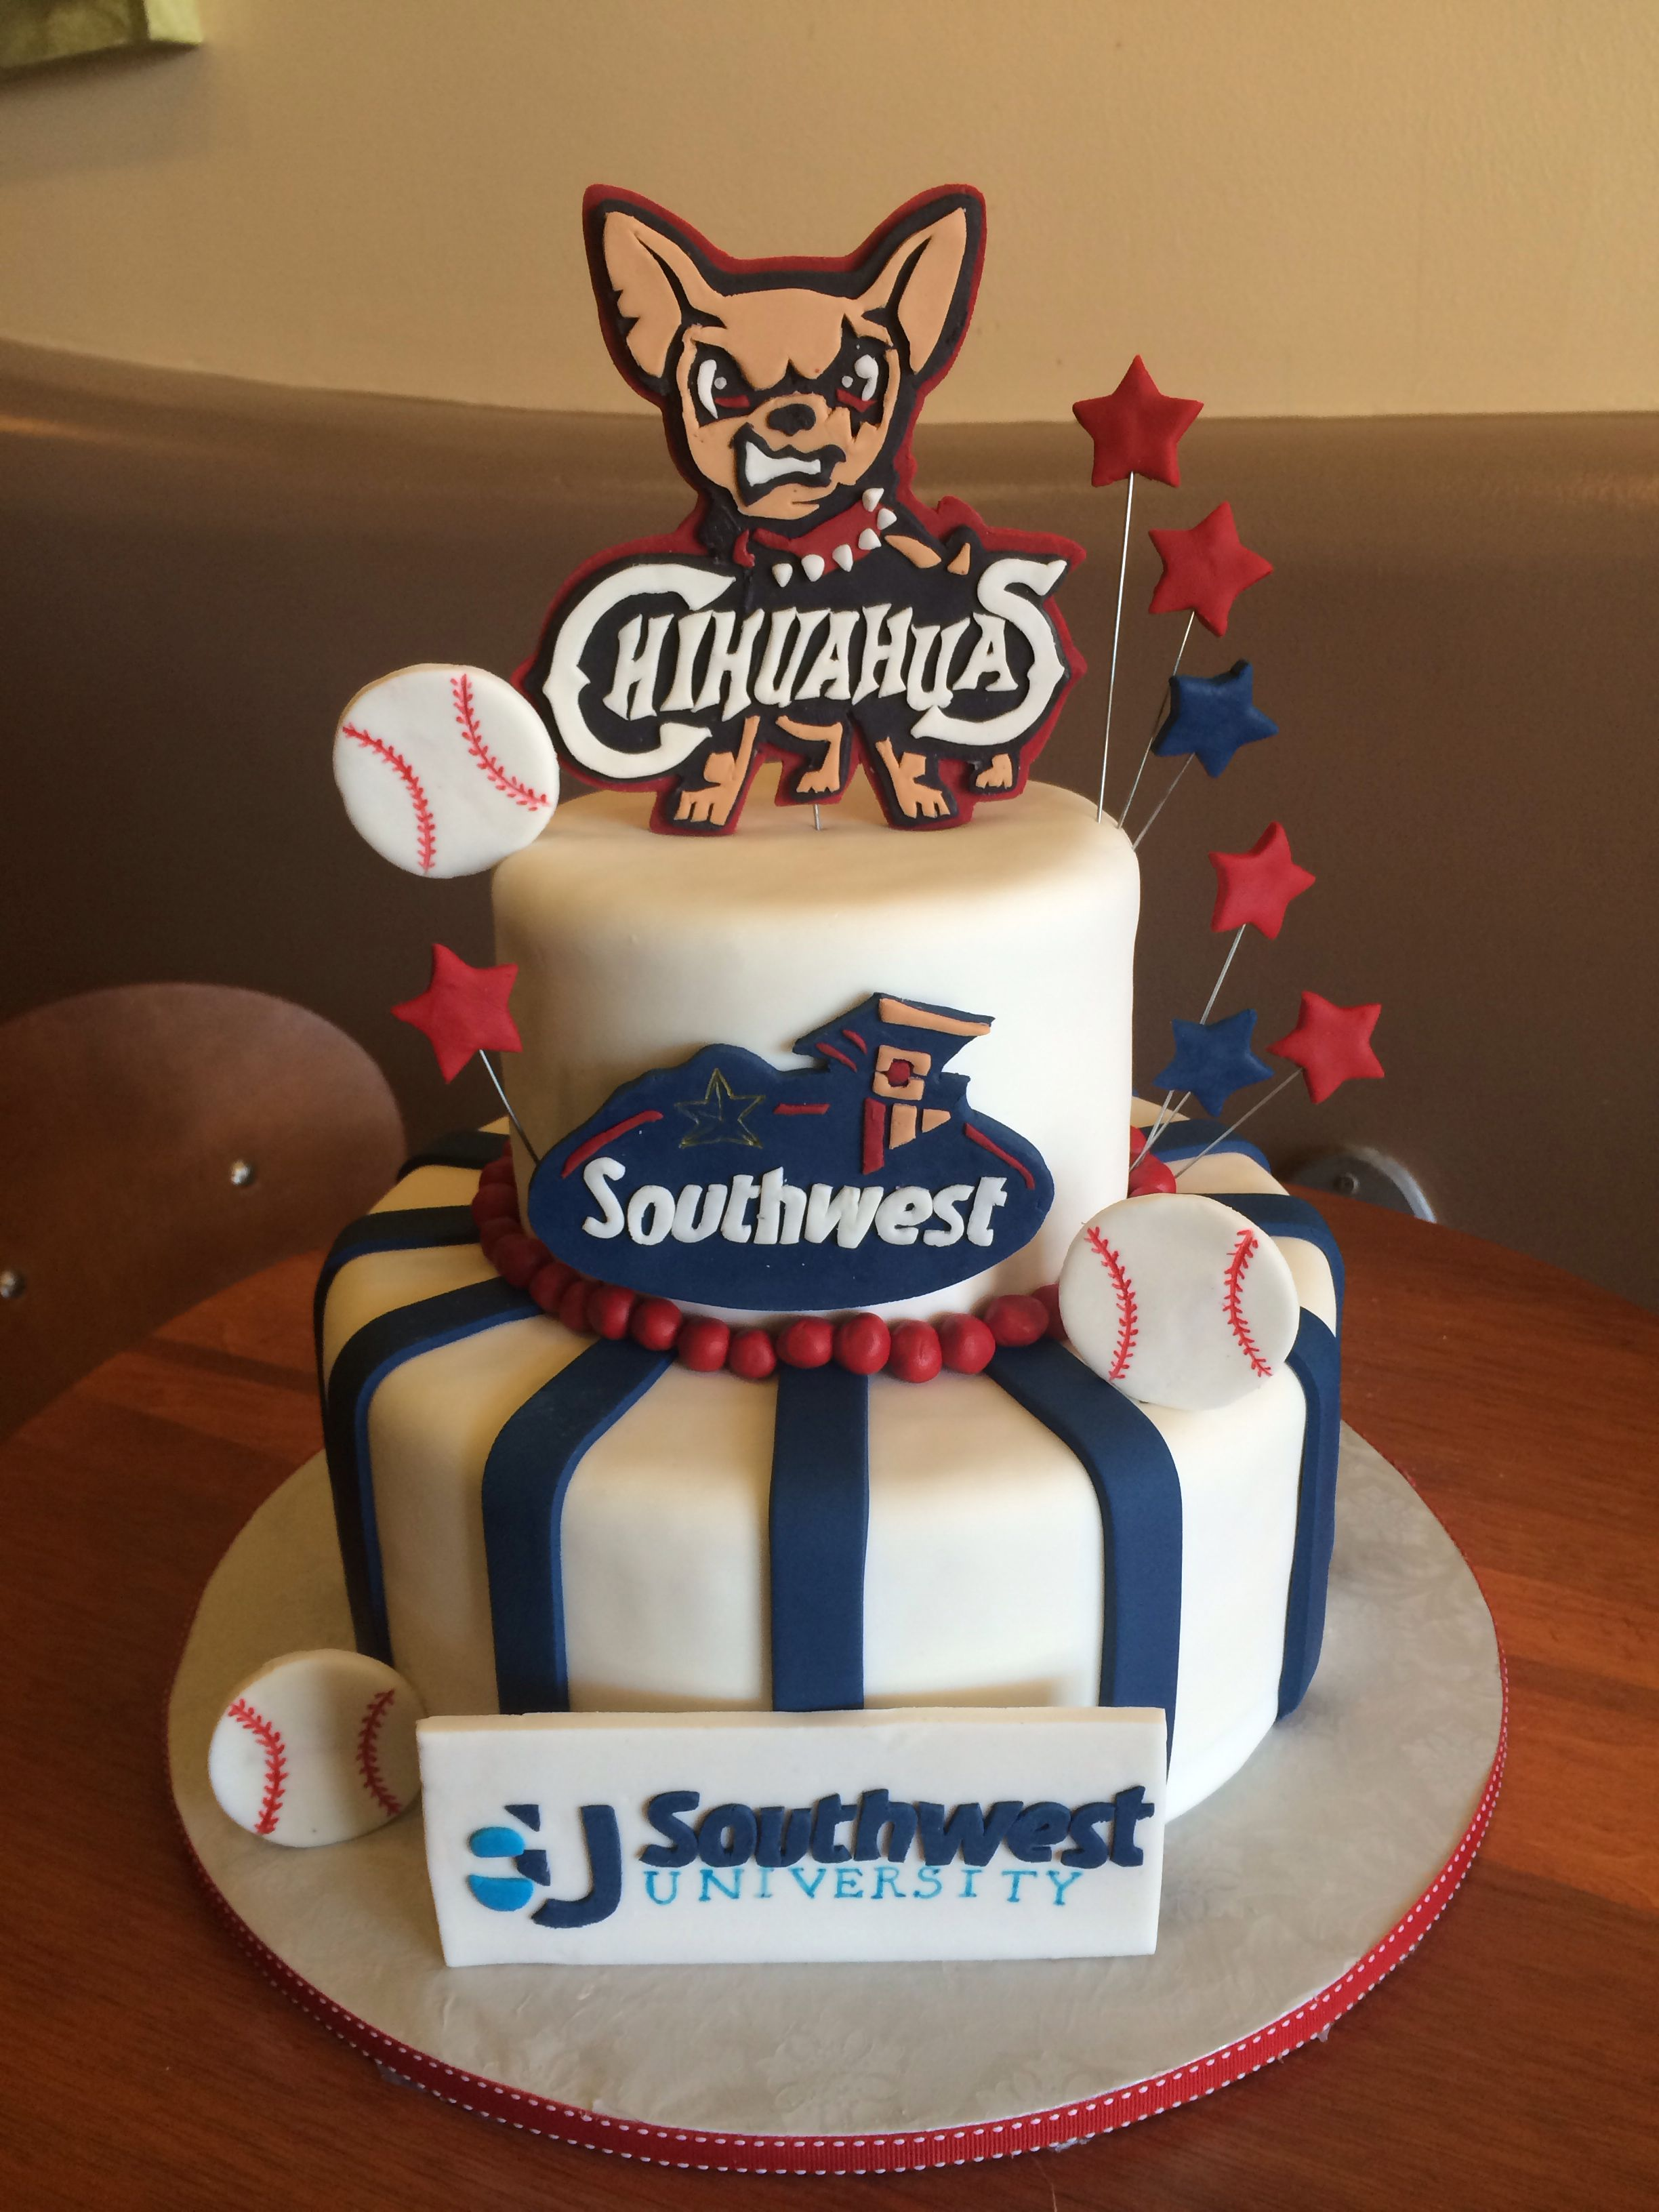 El Paso chihuahua's cake | The cake boutique | Cake, Birthday cake ...